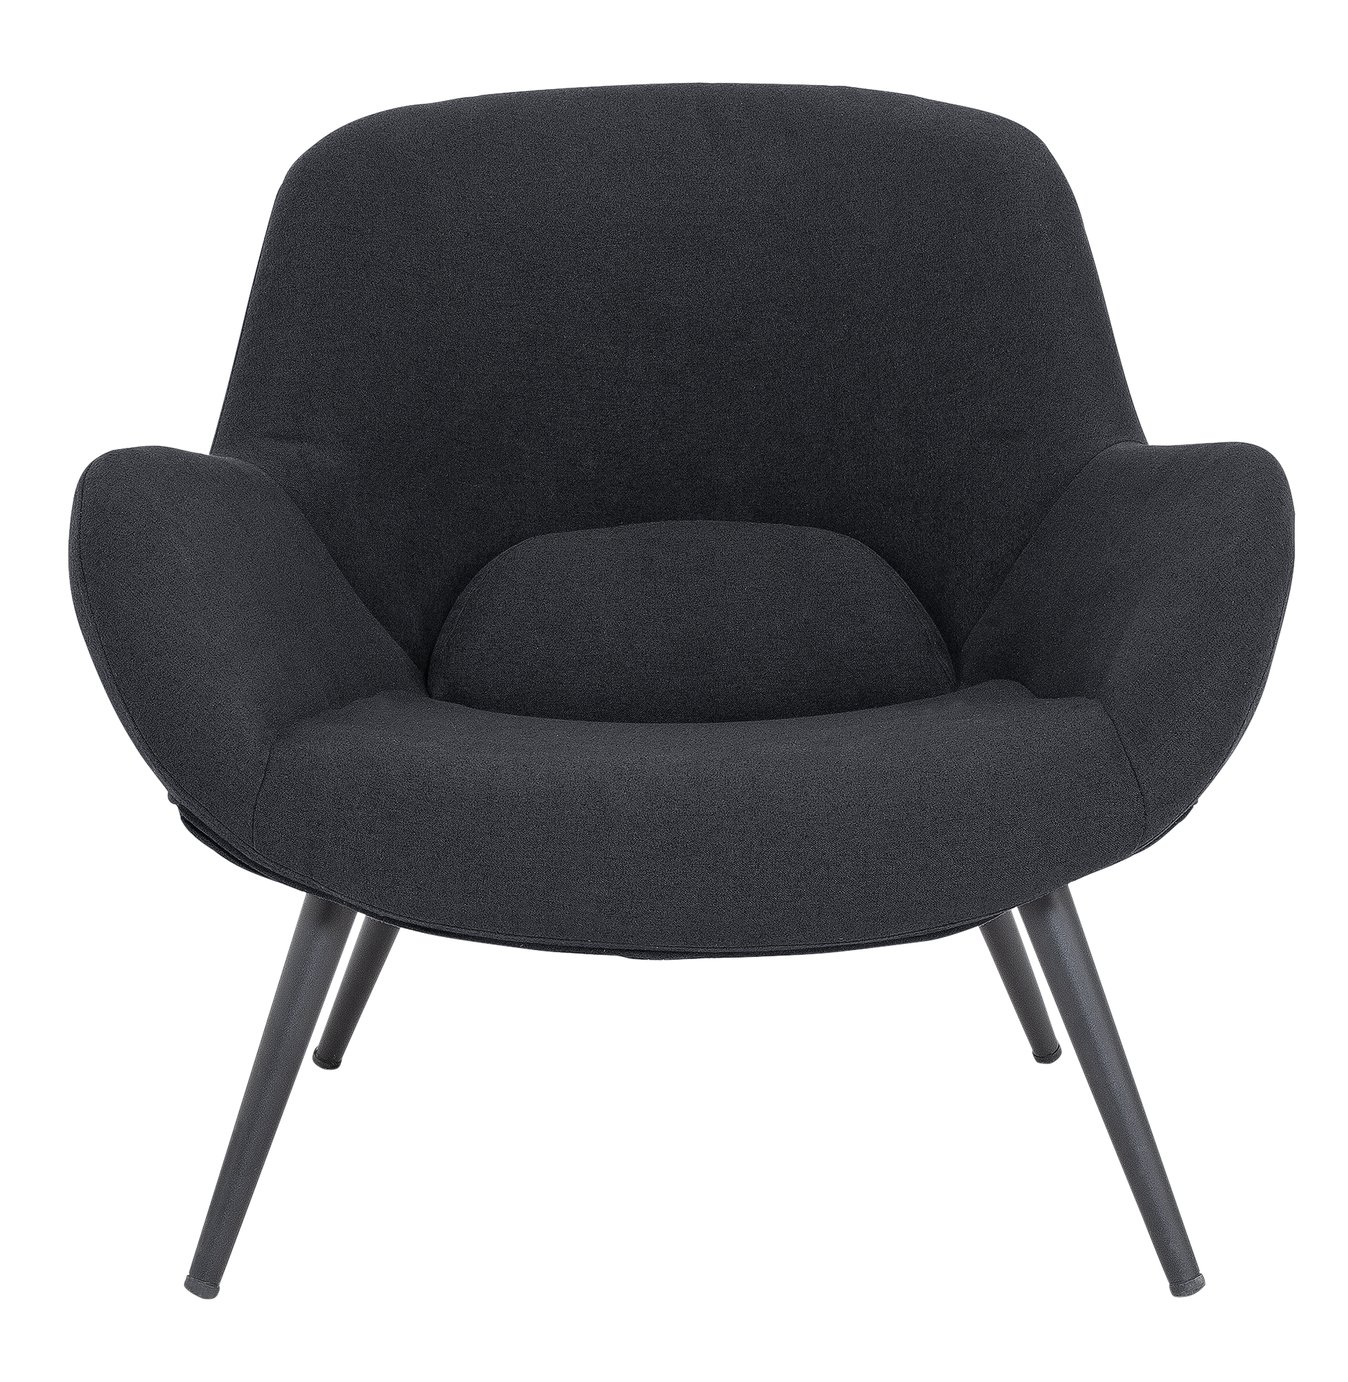 Argos Home Ollie Fabric Accent Chair - Charcoal